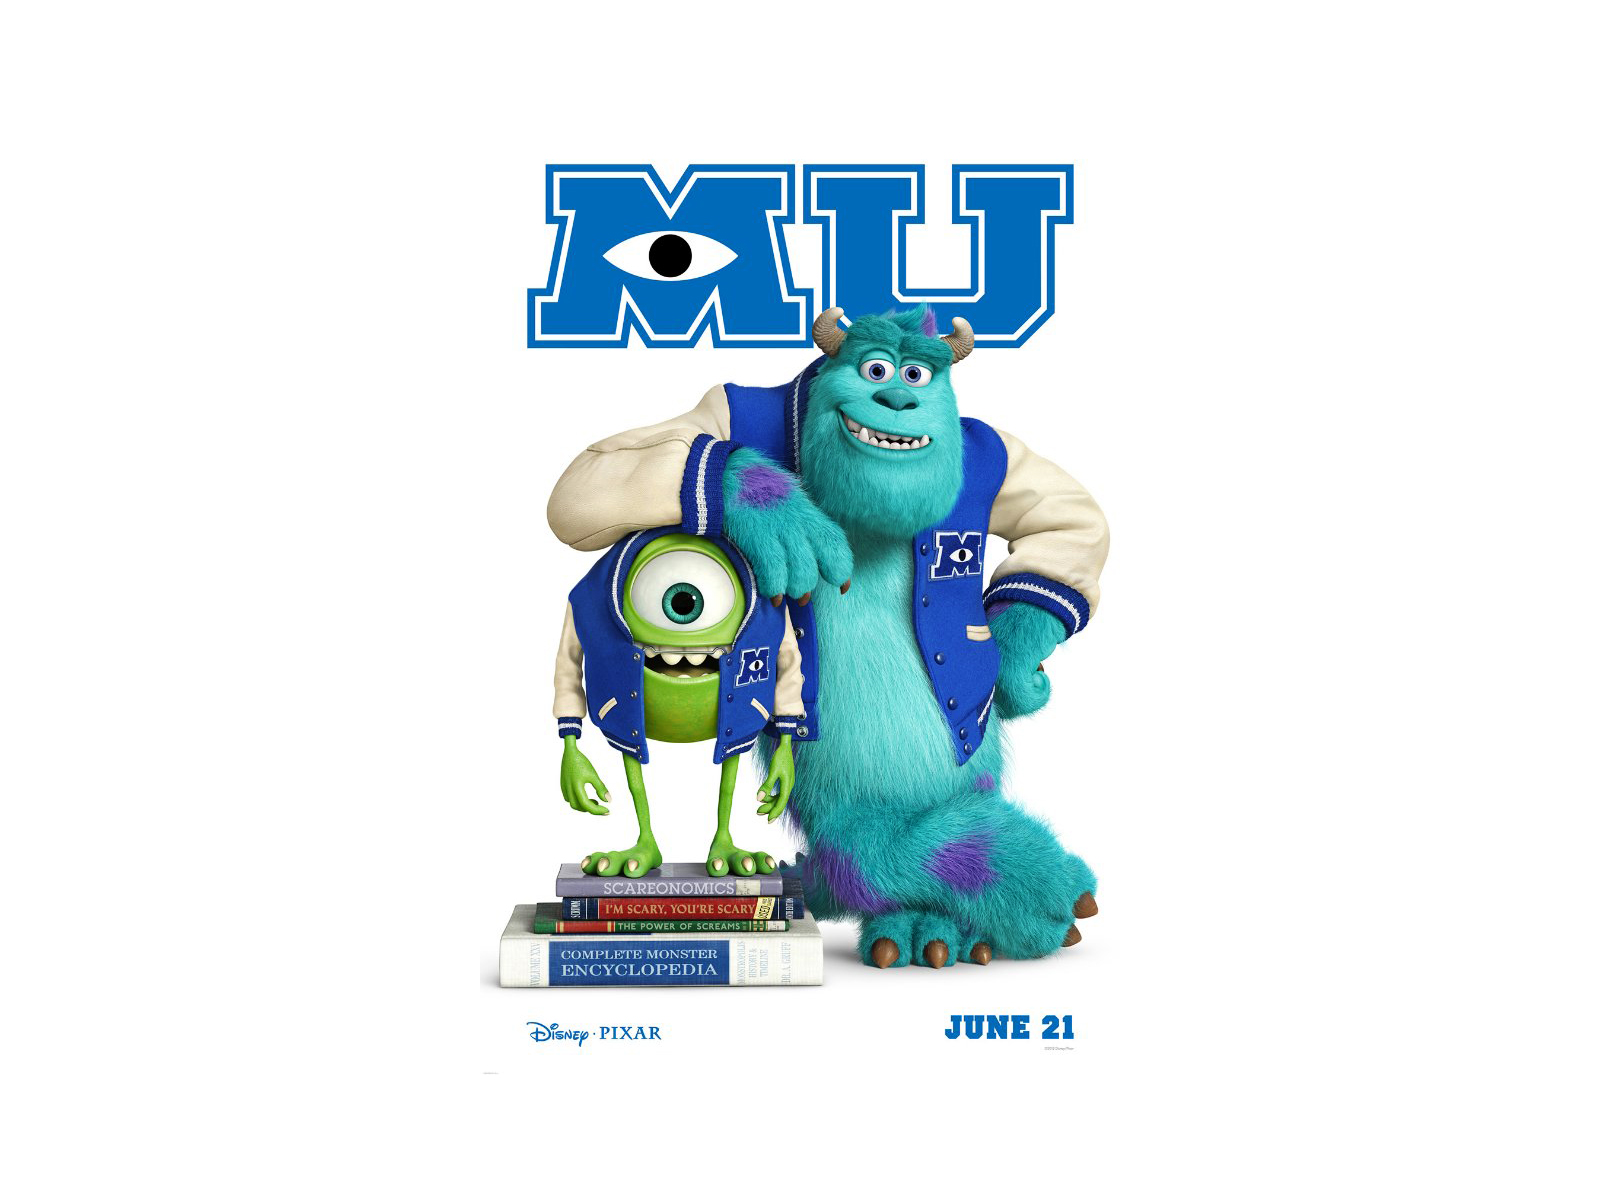 Hd wallpaper monster university 2013 monsters university 3d animation movie hd wallpaper voltagebd Images